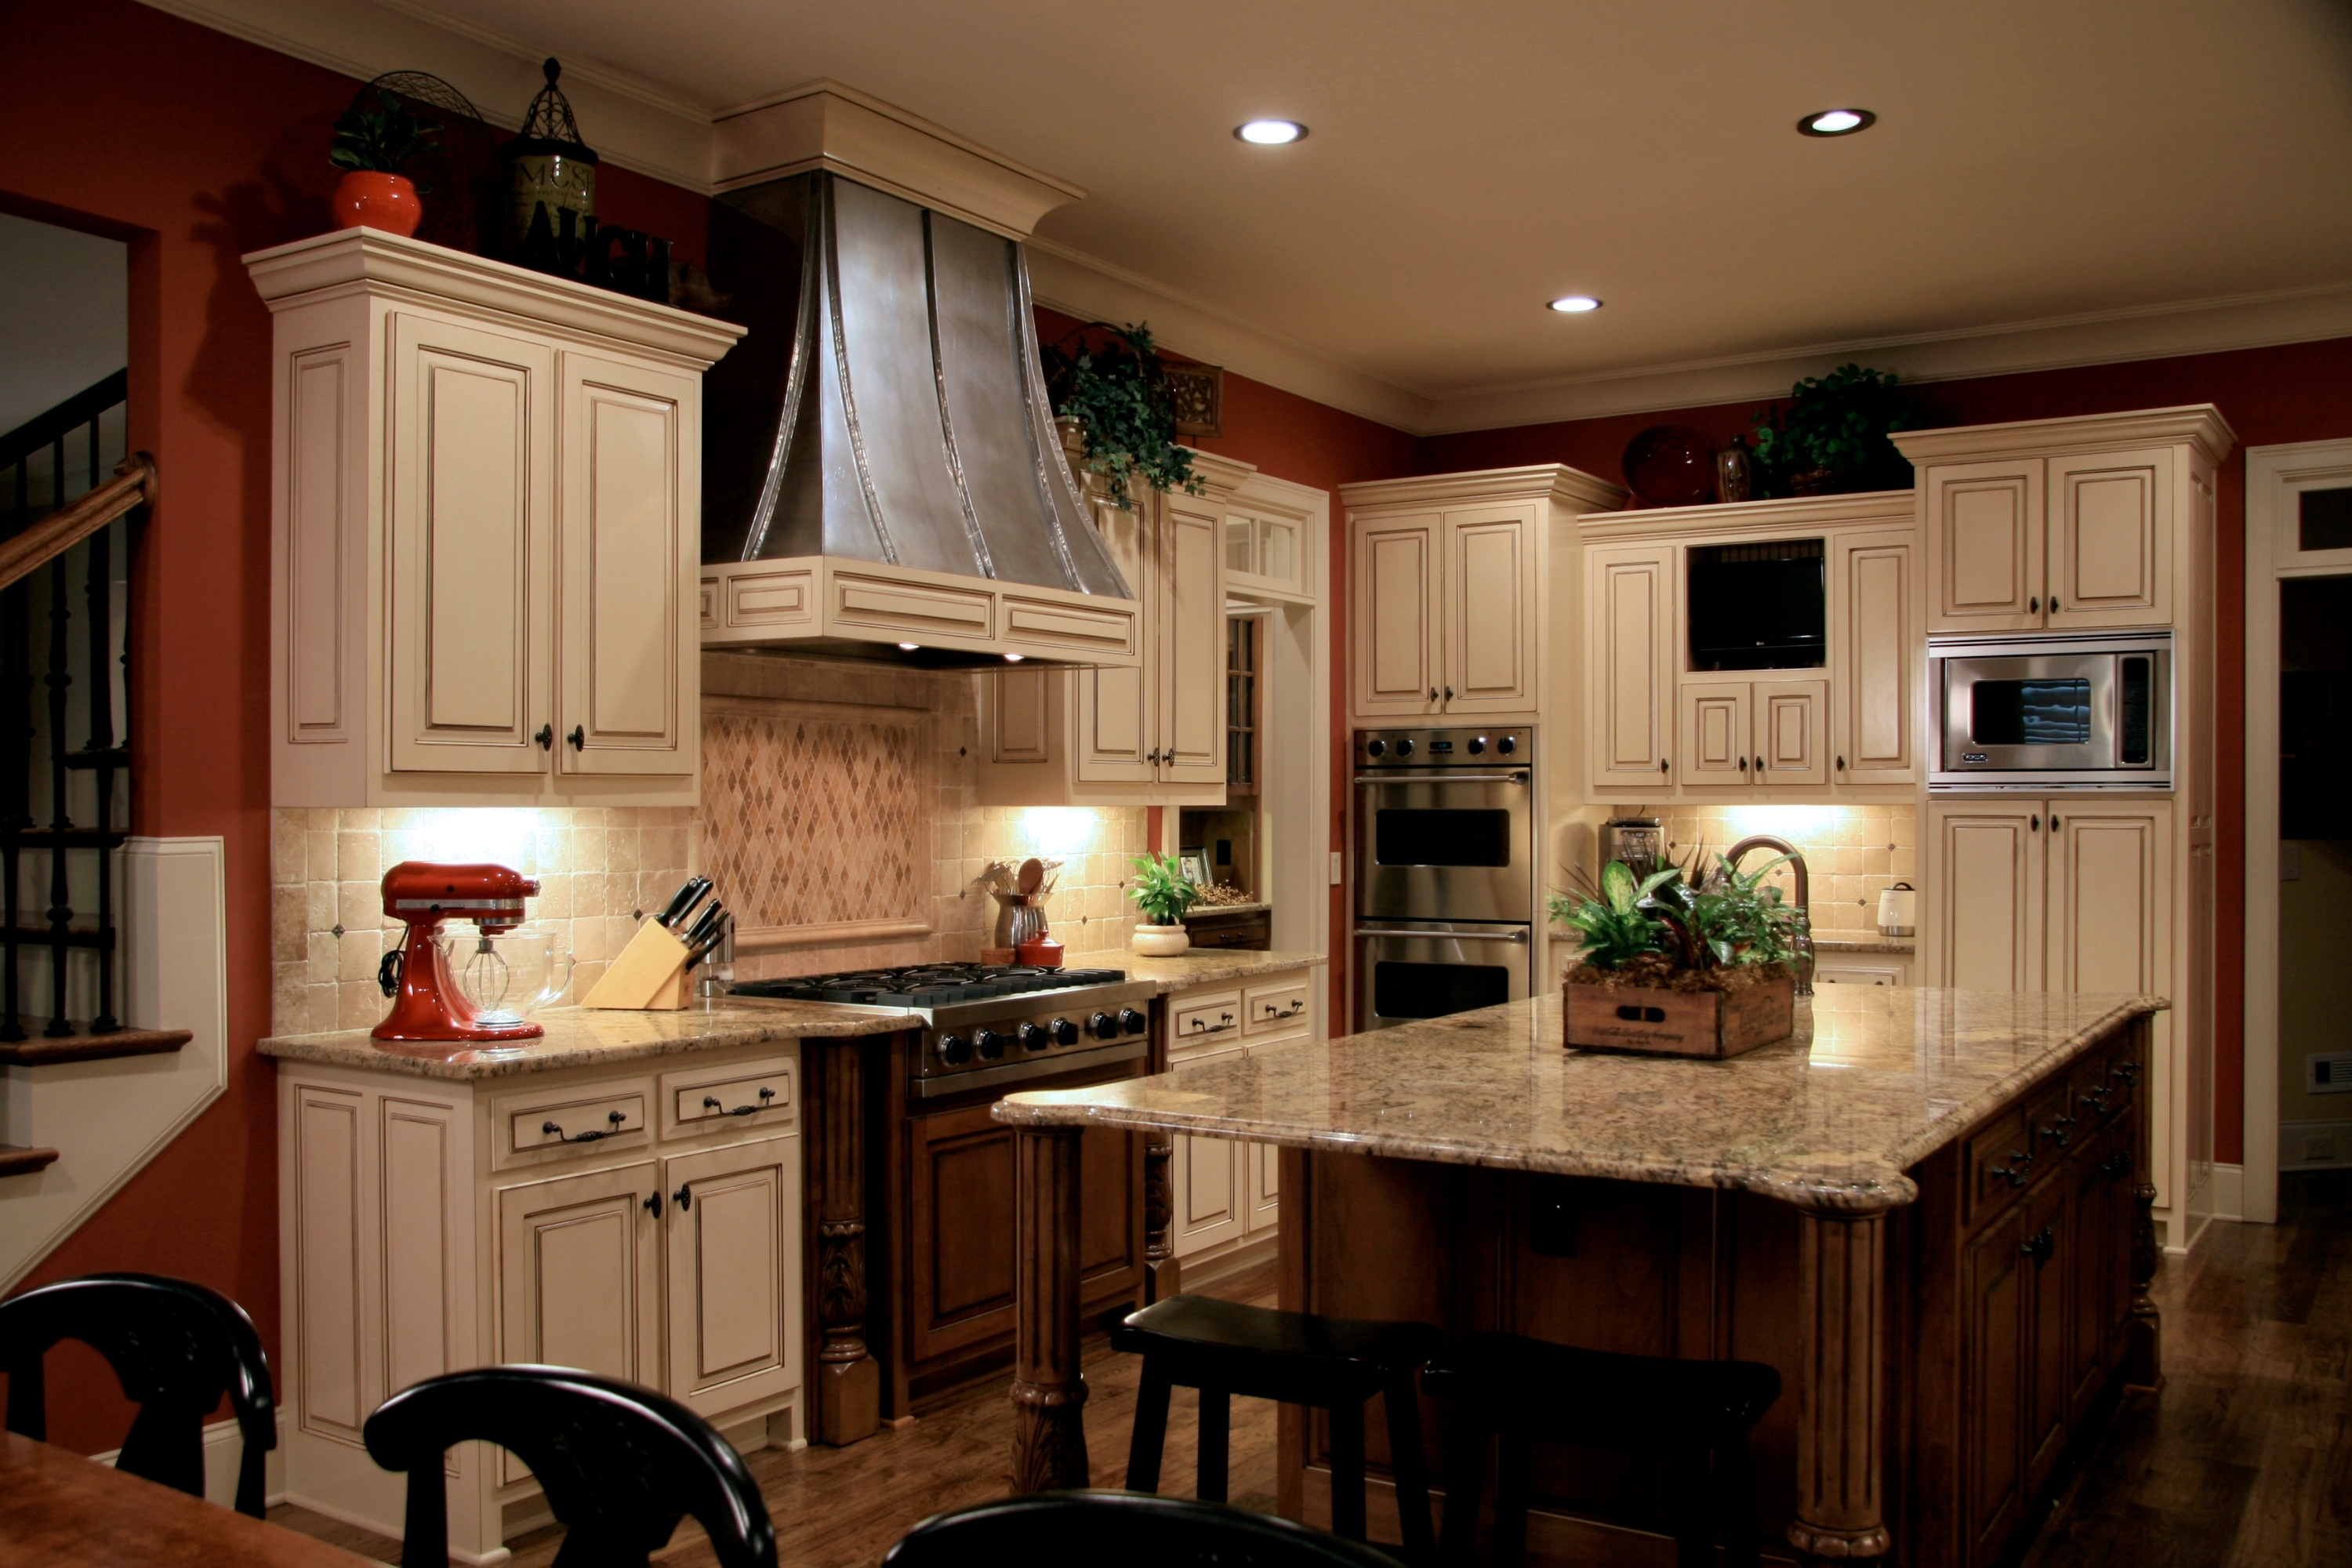 Install Recessed Lighting In A Kitchen Pro Construction Guide